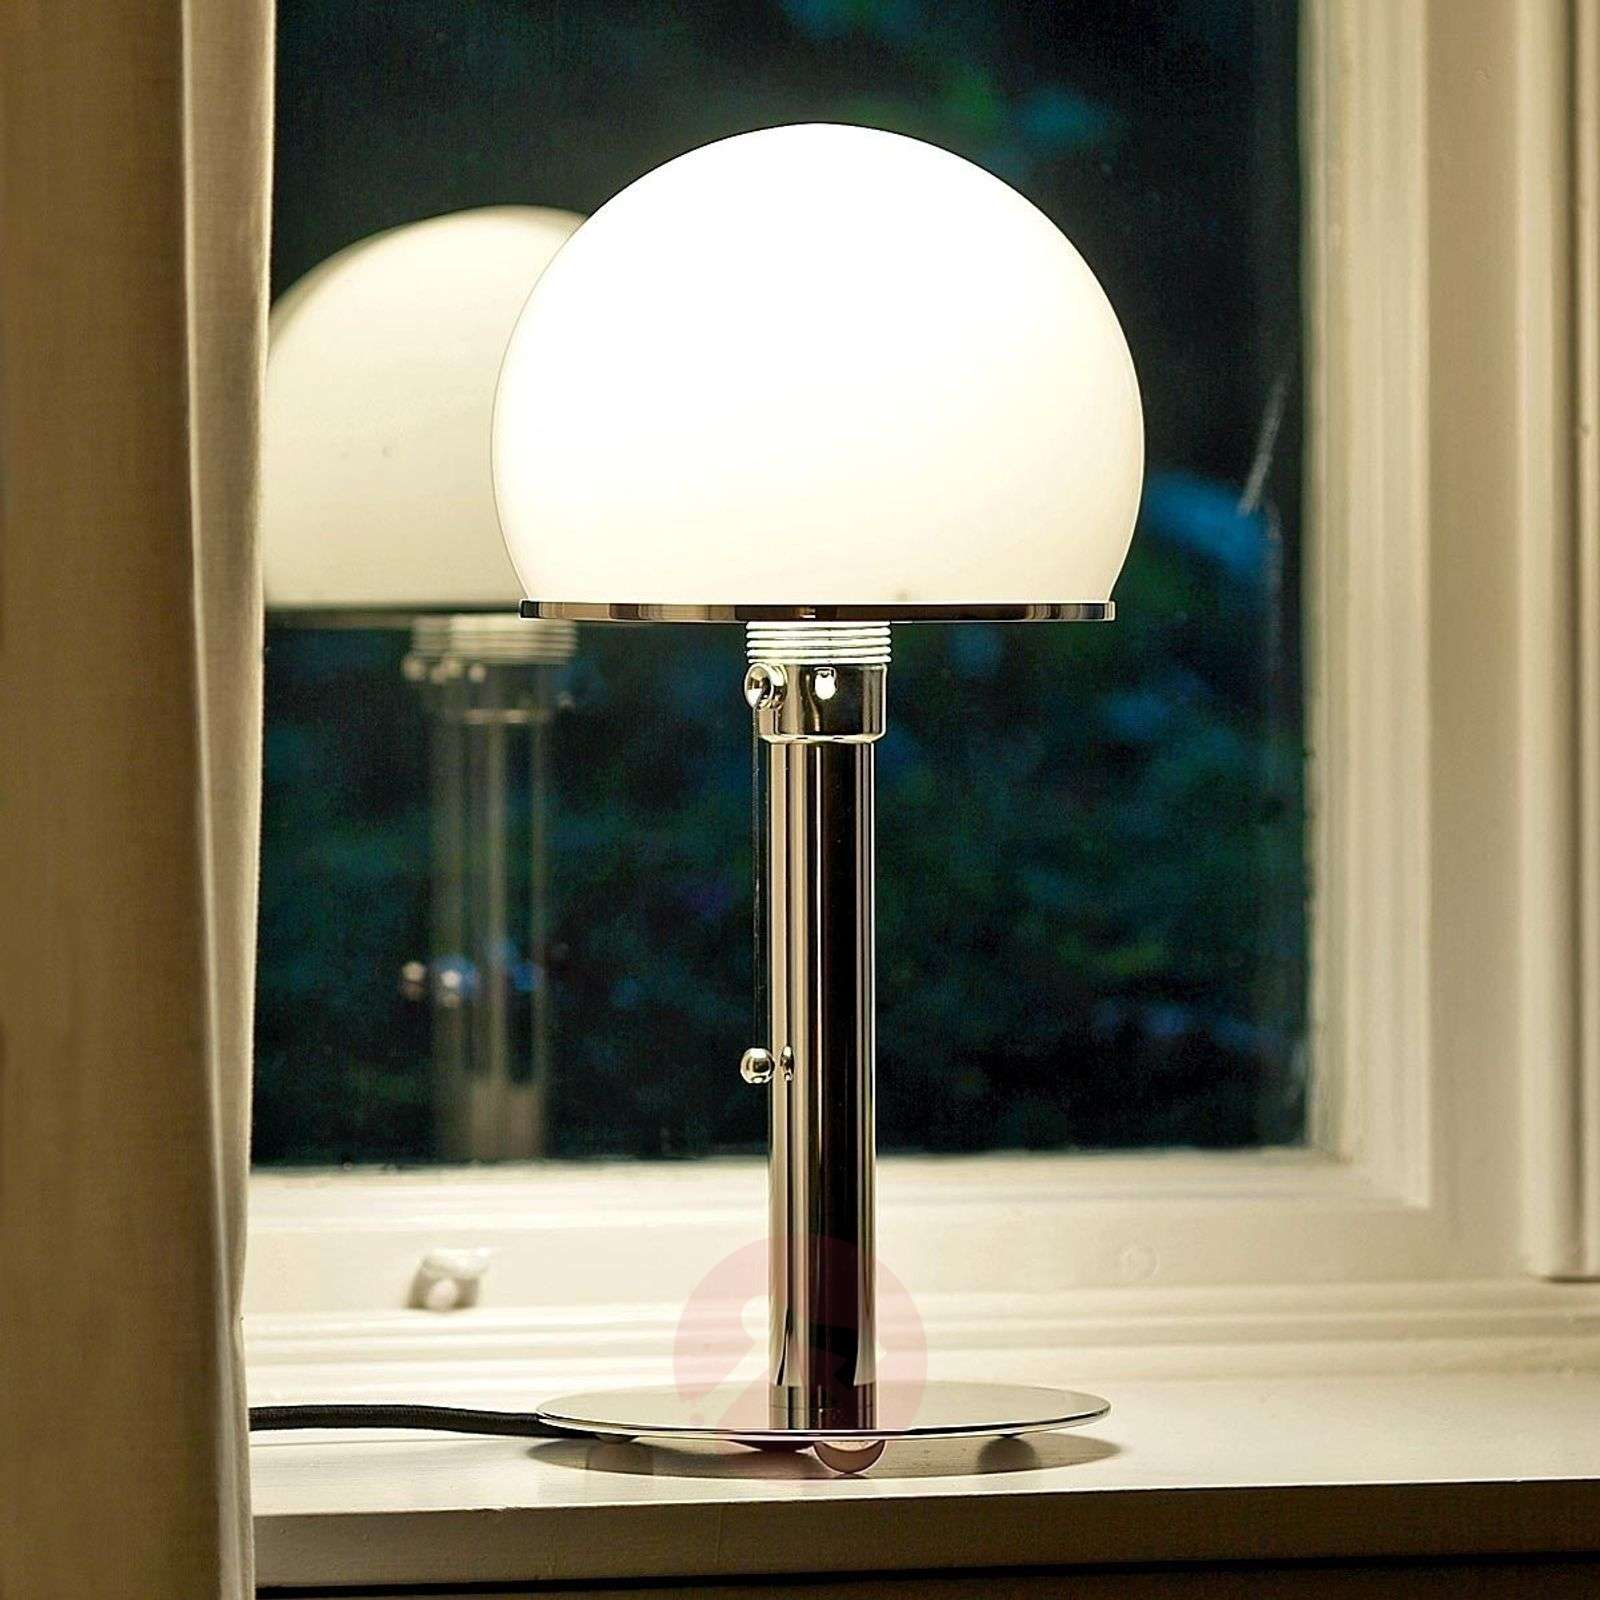 Wagenfeld table lamp WA 24 Special